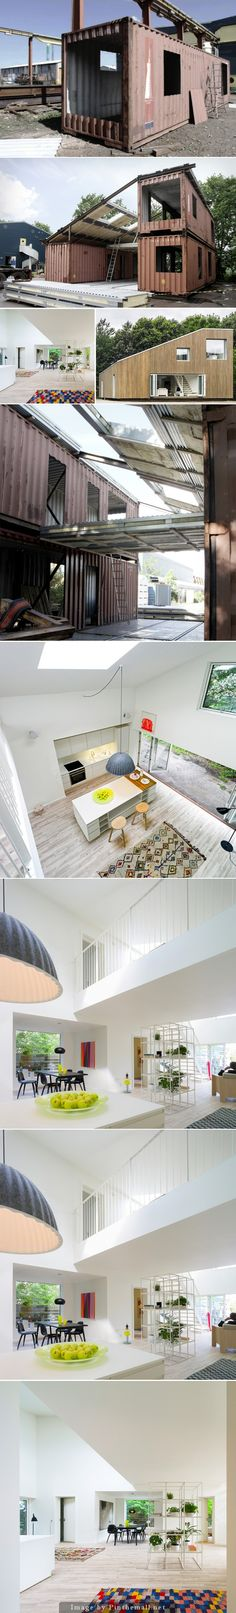 Upcycled Shipping Container House - .... ♥♥ .... Find out how to create one here http://howtobuildashippingcontainerhome.blogspot.com/